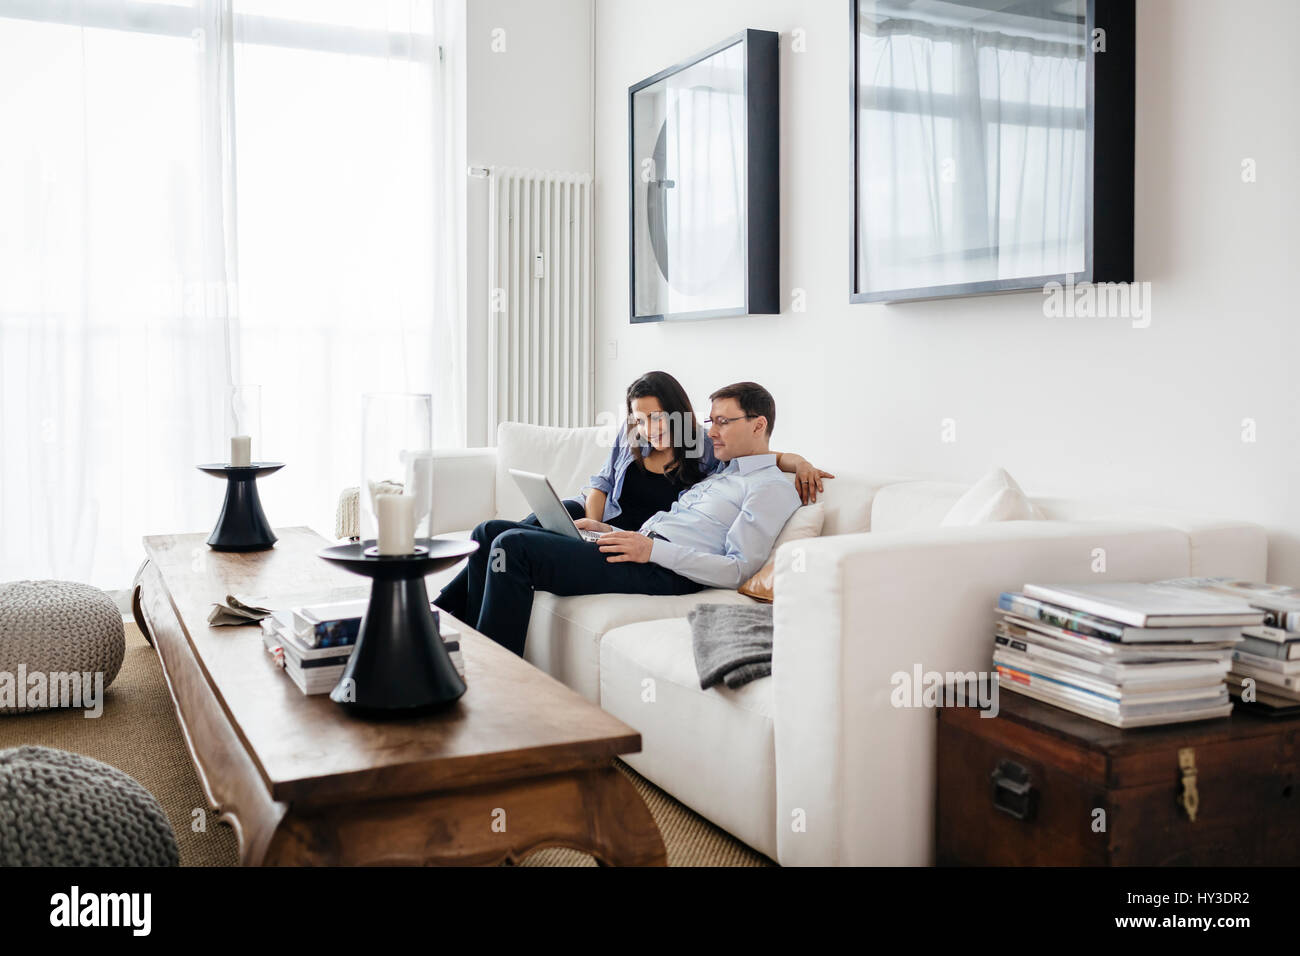 Germany, Man and woman sitting on sofa with laptop - Stock Image